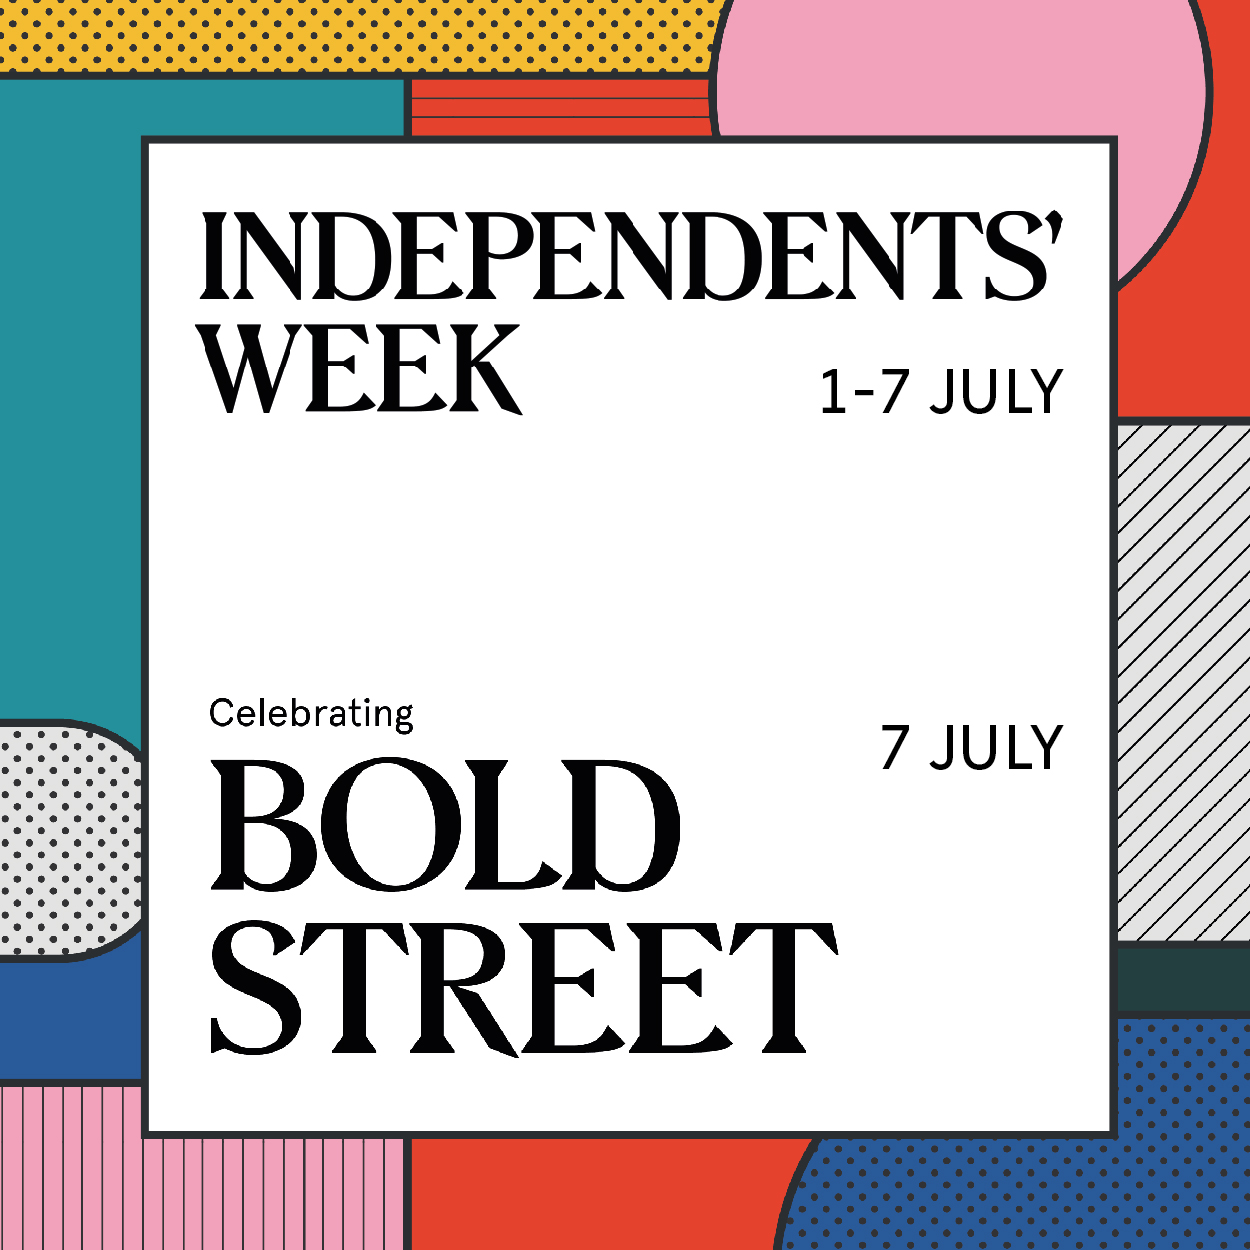 Opportunities Independents Week - Celebrating Bold Street-01